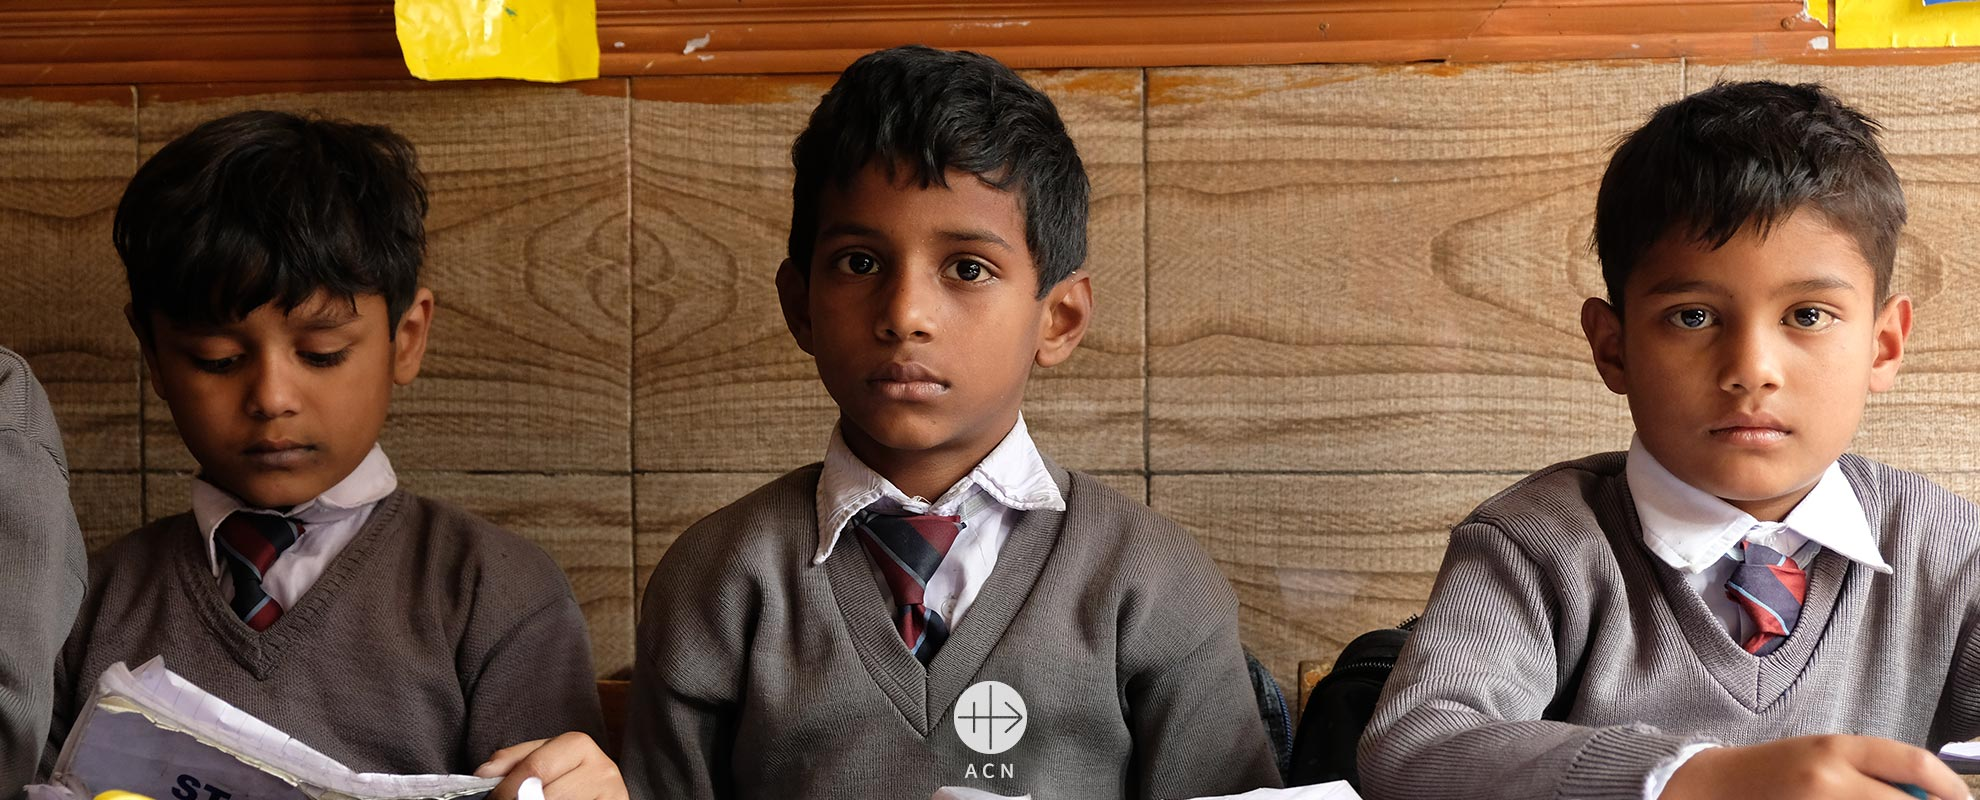 The church in Pakistan places its hope in educating the Christian minority and ensuring it has access to the educational system